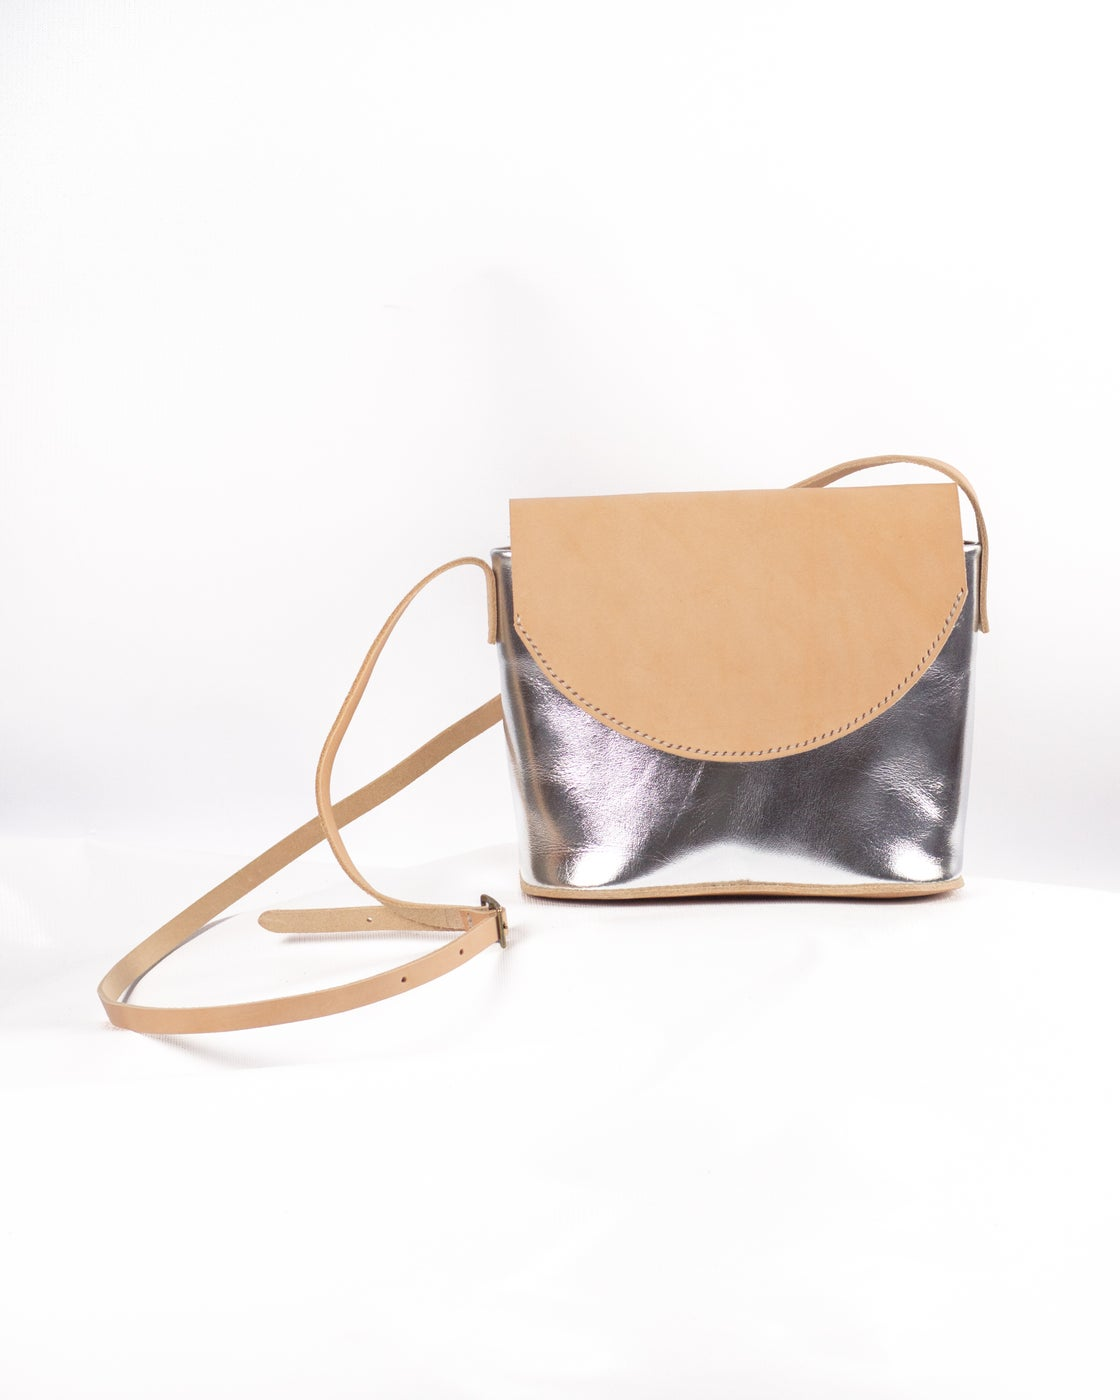 Image of Flap Crossbody in Silver